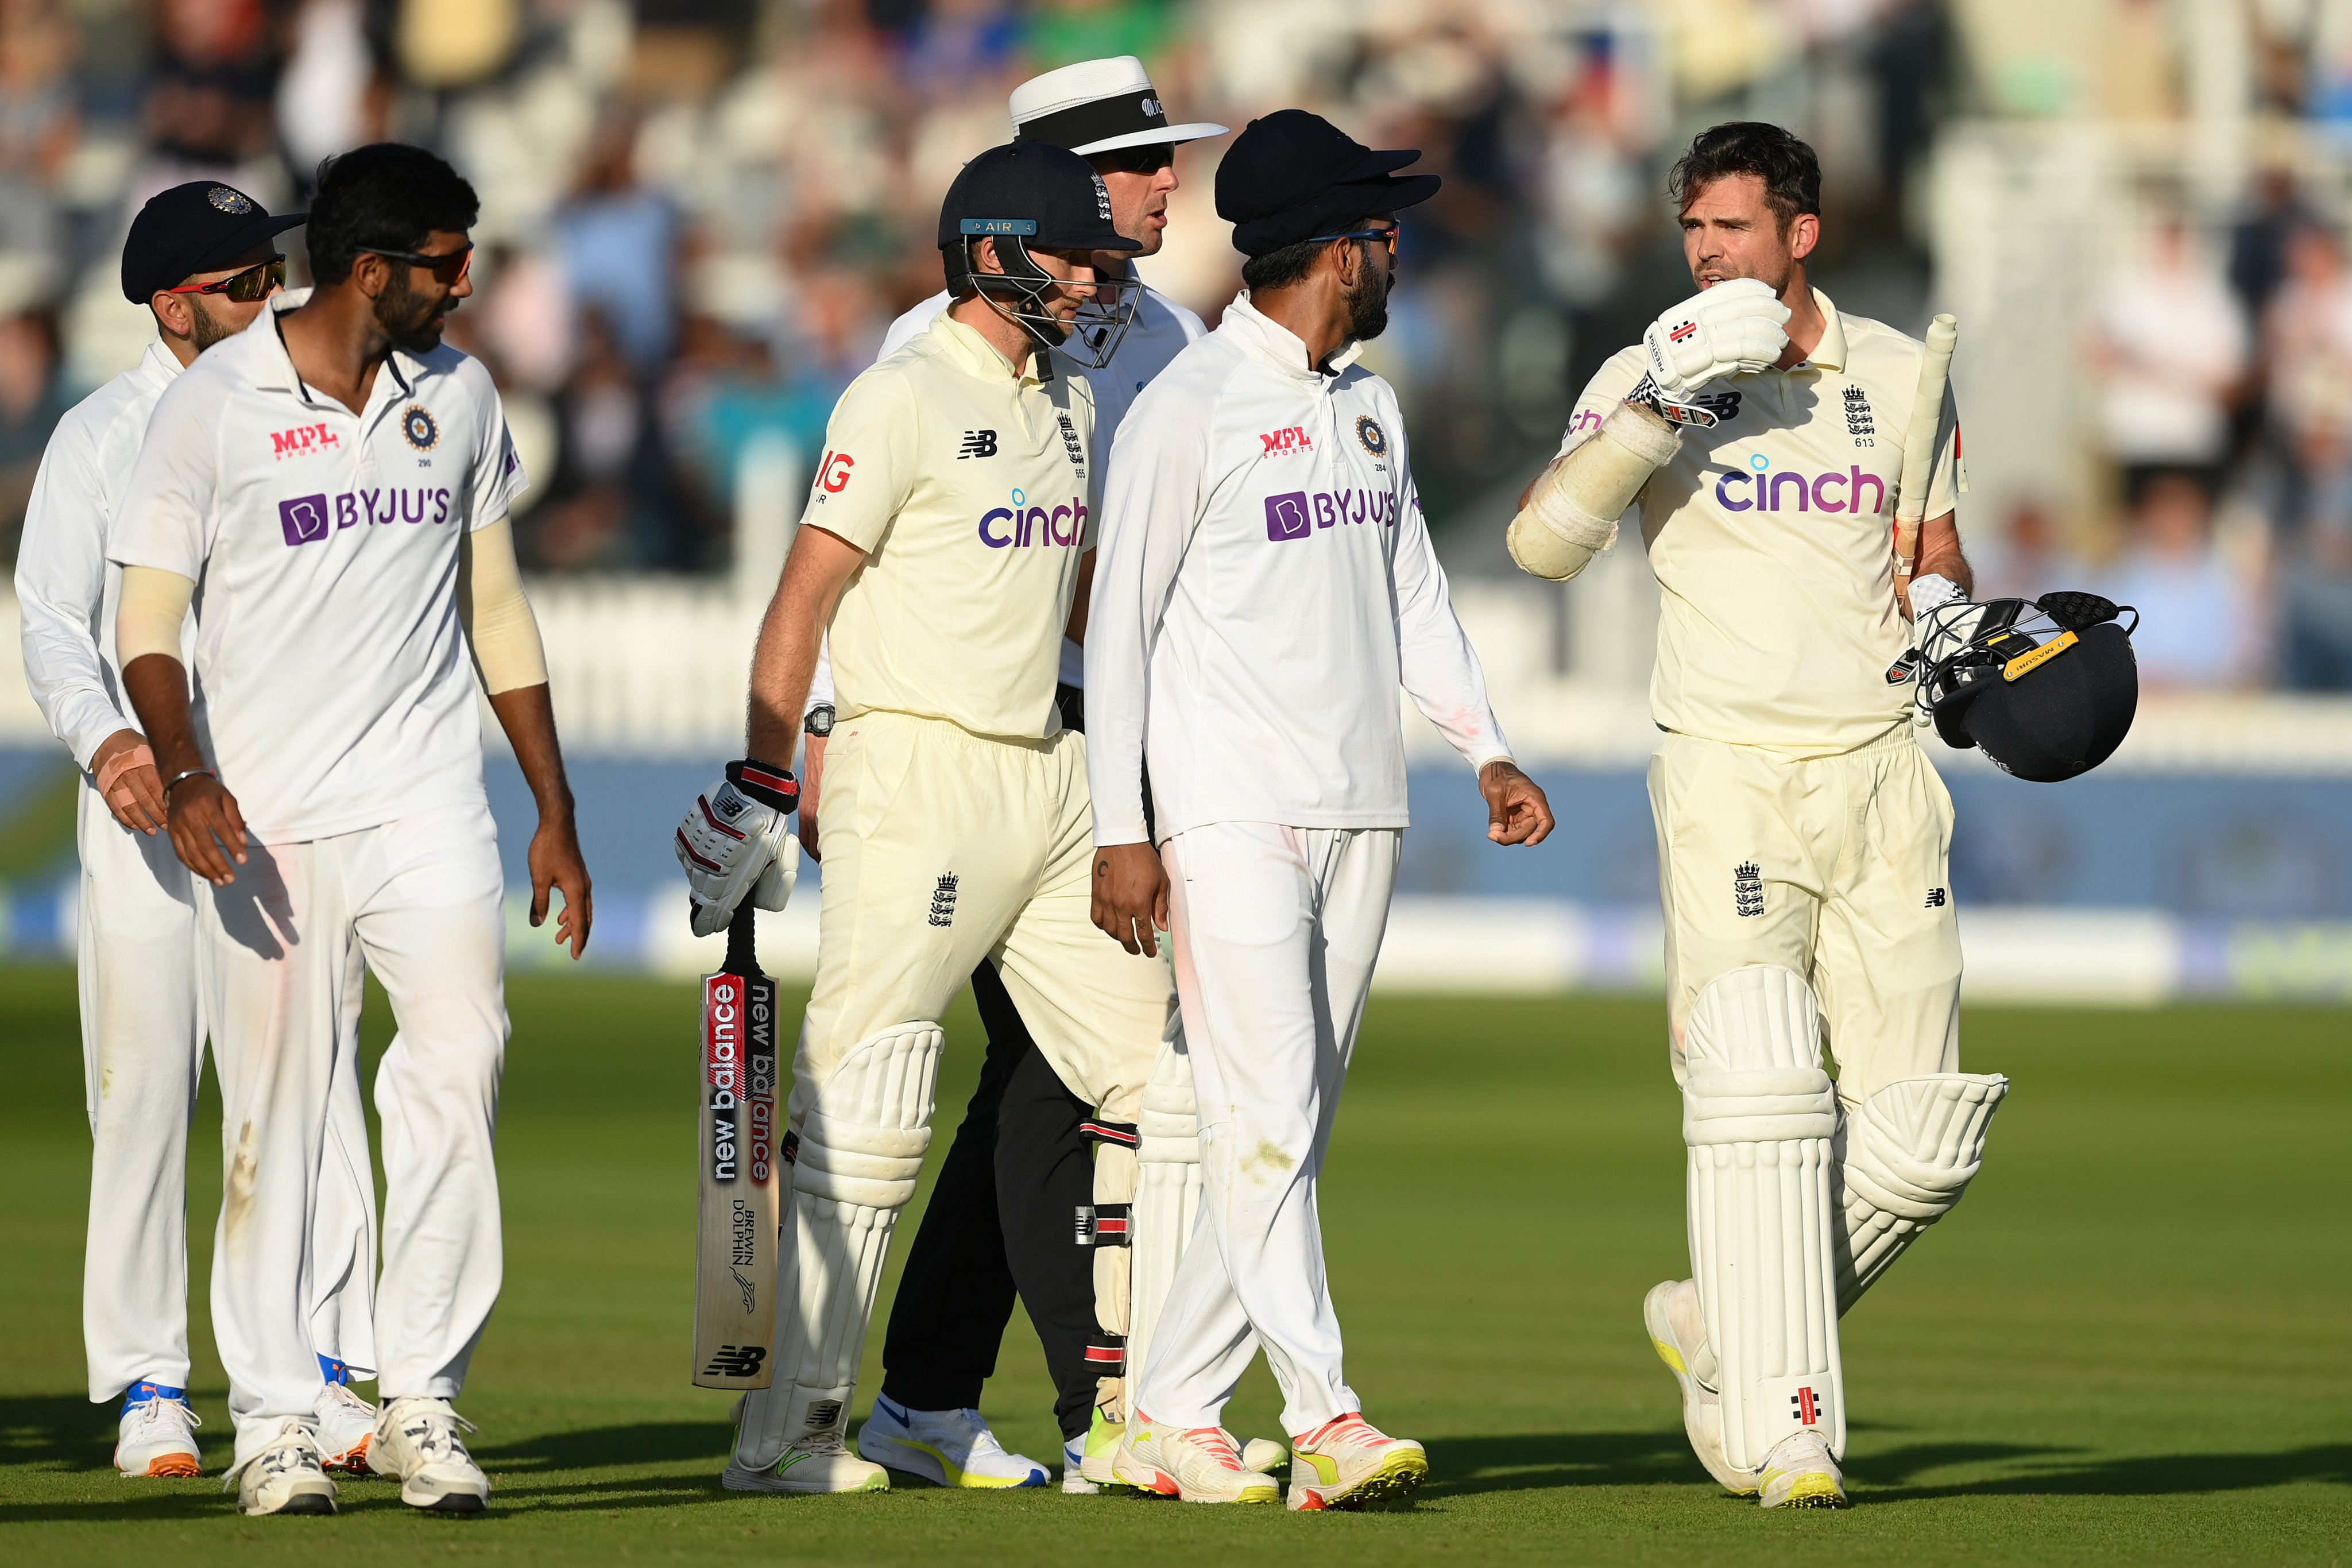 IND vs ENG 2nd Test, Live Cricket Score: India reaches 181/6 at Stumps on Day 4!